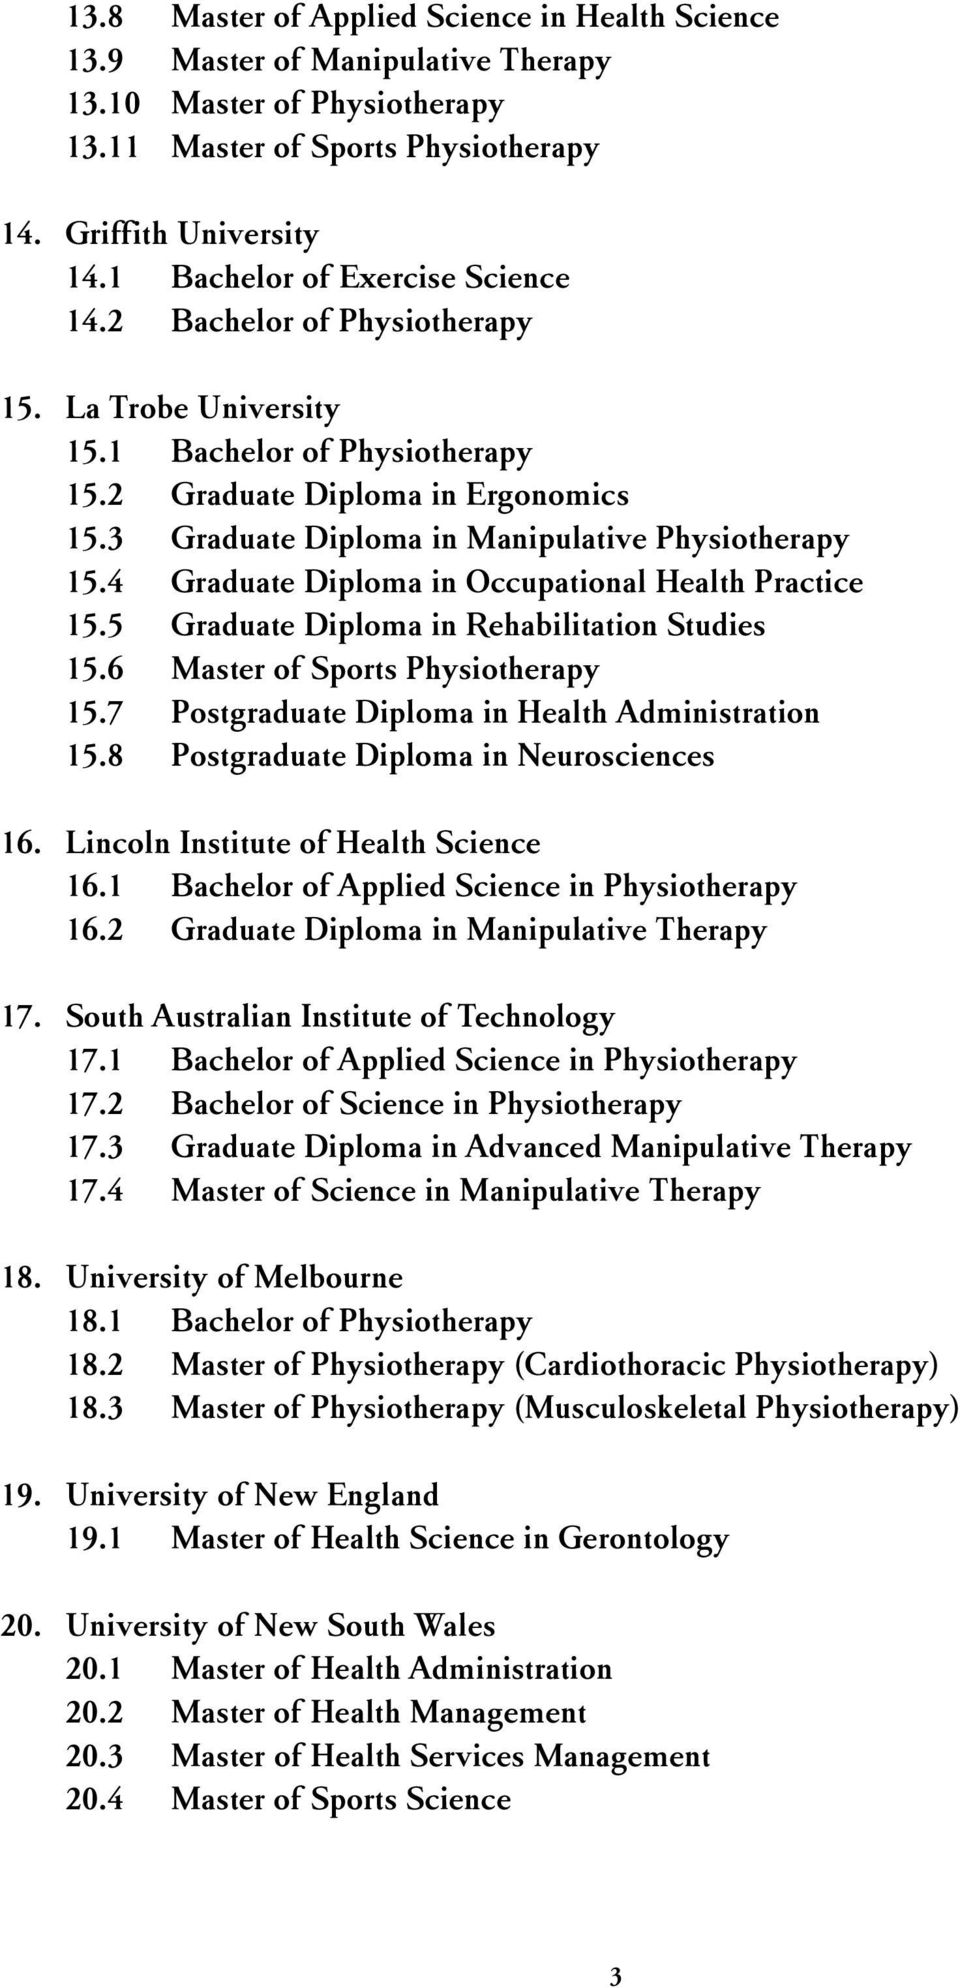 3 Graduate Diploma in Manipulative Physiotherapy 15.4 Graduate Diploma in Occupational Health Practice 15.5 Graduate Diploma in Rehabilitation Studies 15.6 Master of Sports Physiotherapy 15.